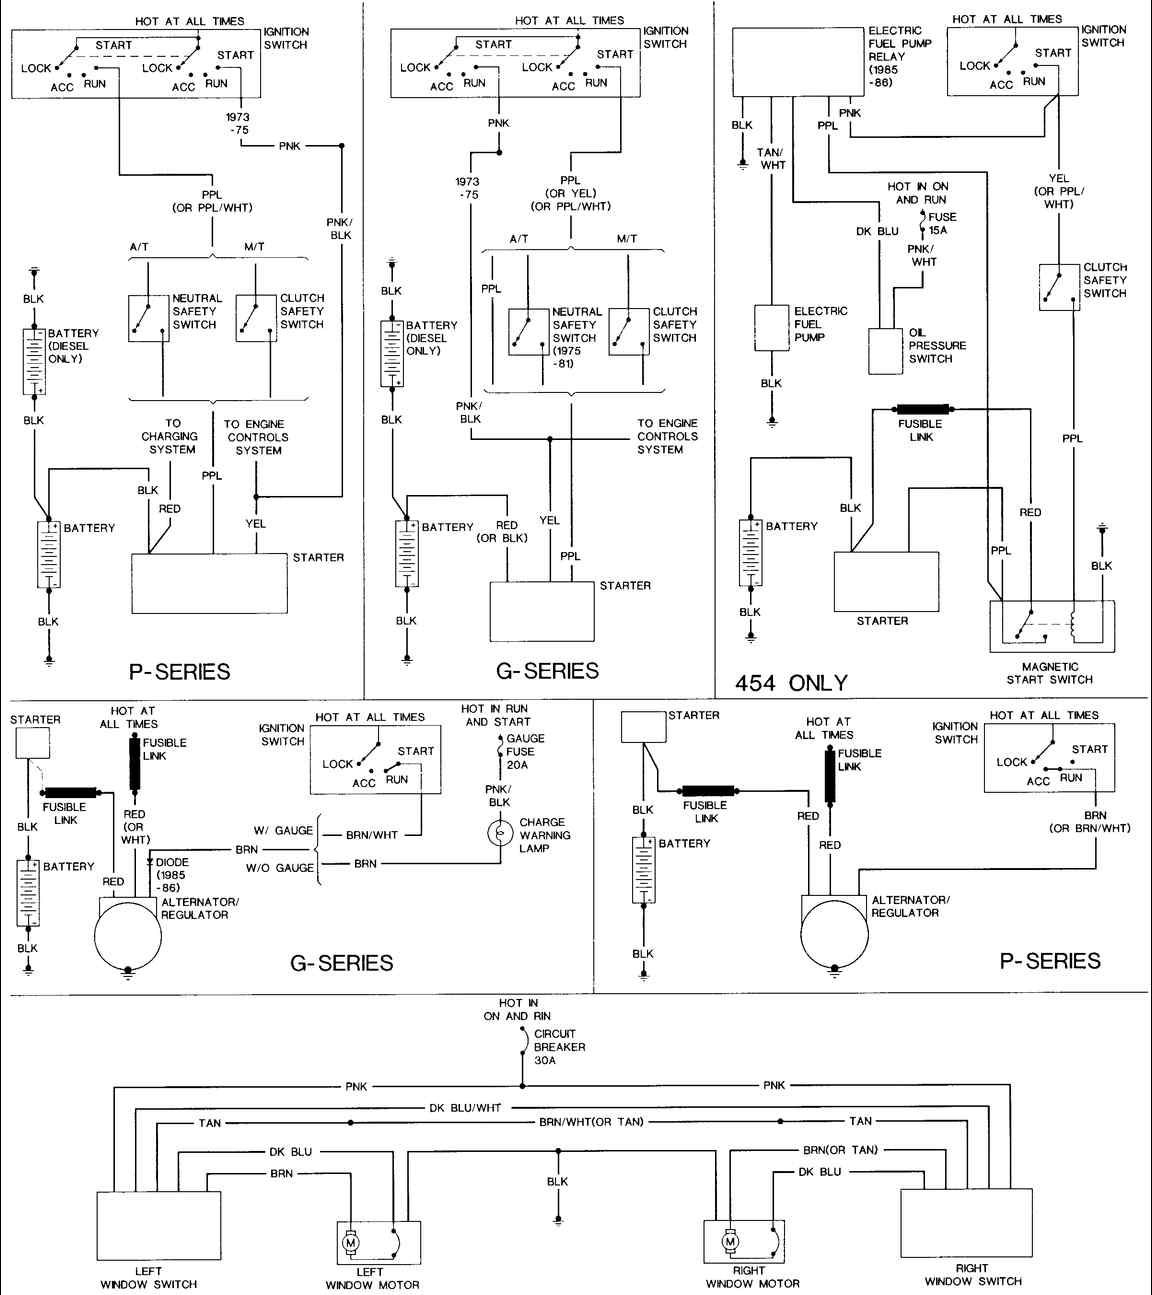 [QMVU_8575]  85 chevy: van..the steering column and started it by pushing..rod | Chevy  trucks, Chevy express, Chevy | 1988 Chevy S10 Steering Column Wiring Diagram |  | Pinterest